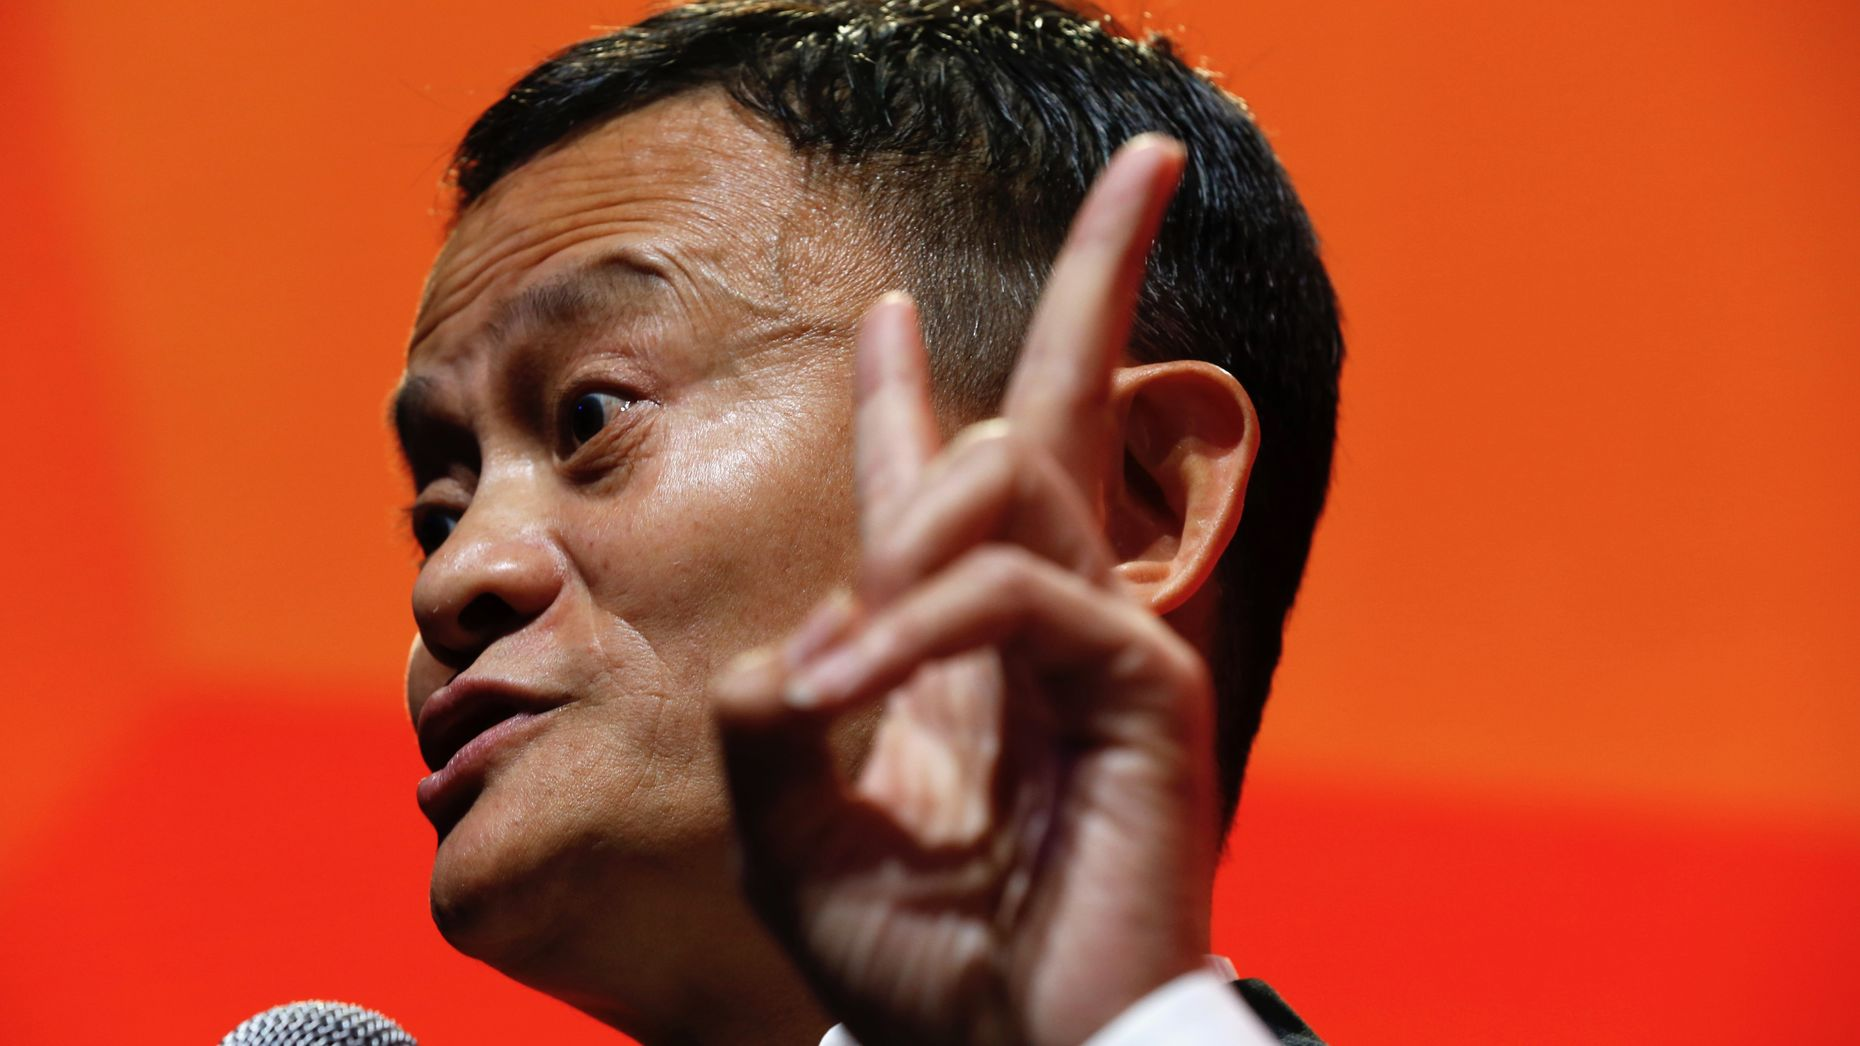 Alibaba Executive Chairman Jack Ma. Photo by Bloomberg.